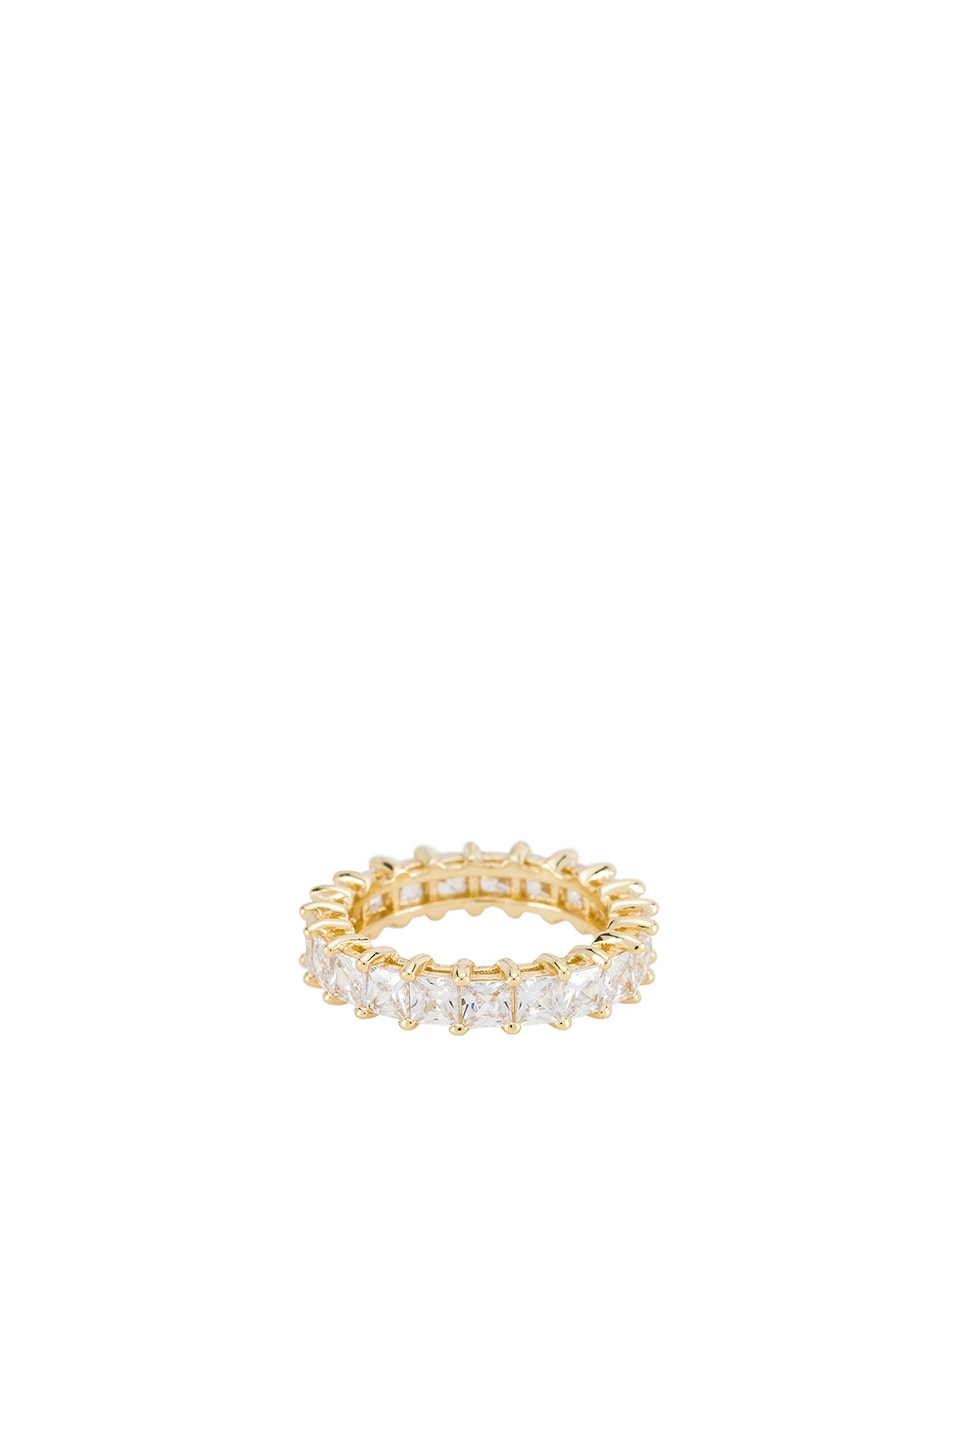 The M Jewelers NY The Princess Cut Eternity Band in Gold